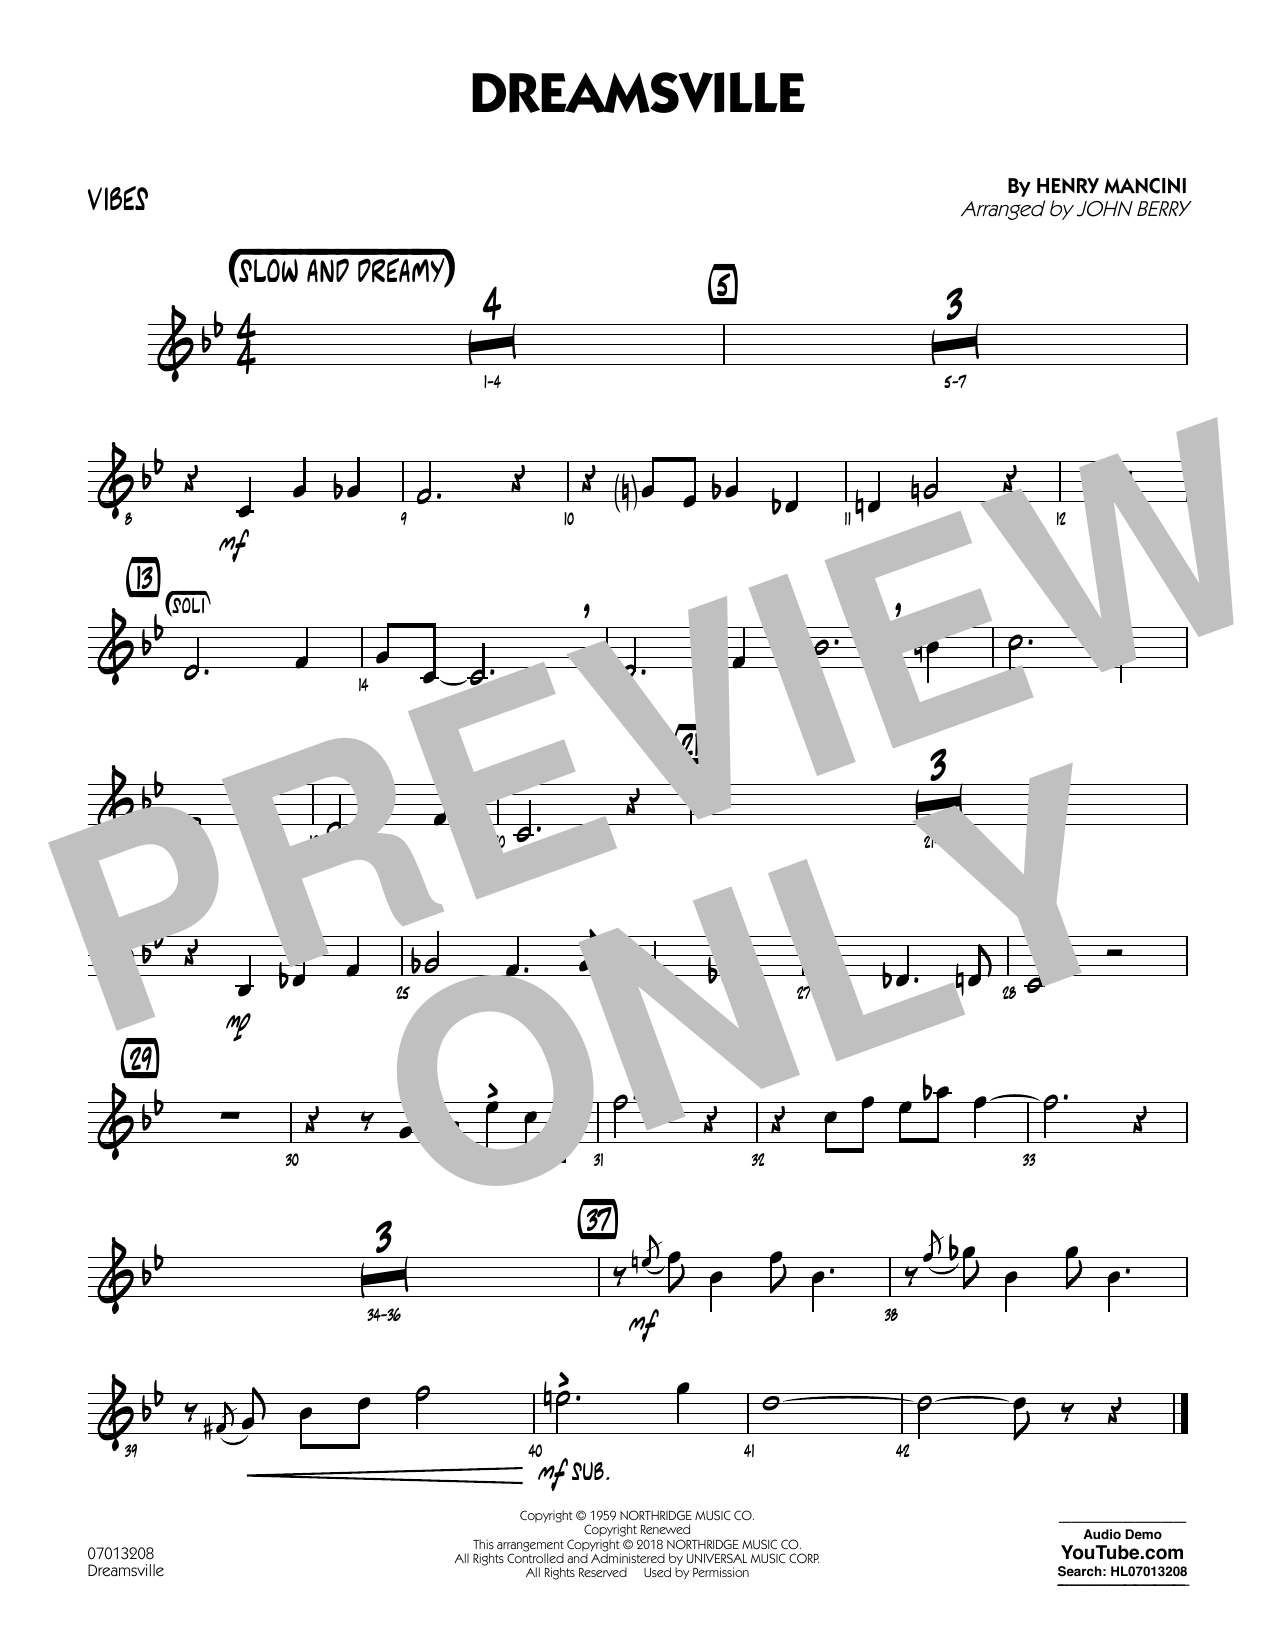 John Berry Dreamsville - Vibes sheet music notes and chords. Download Printable PDF.